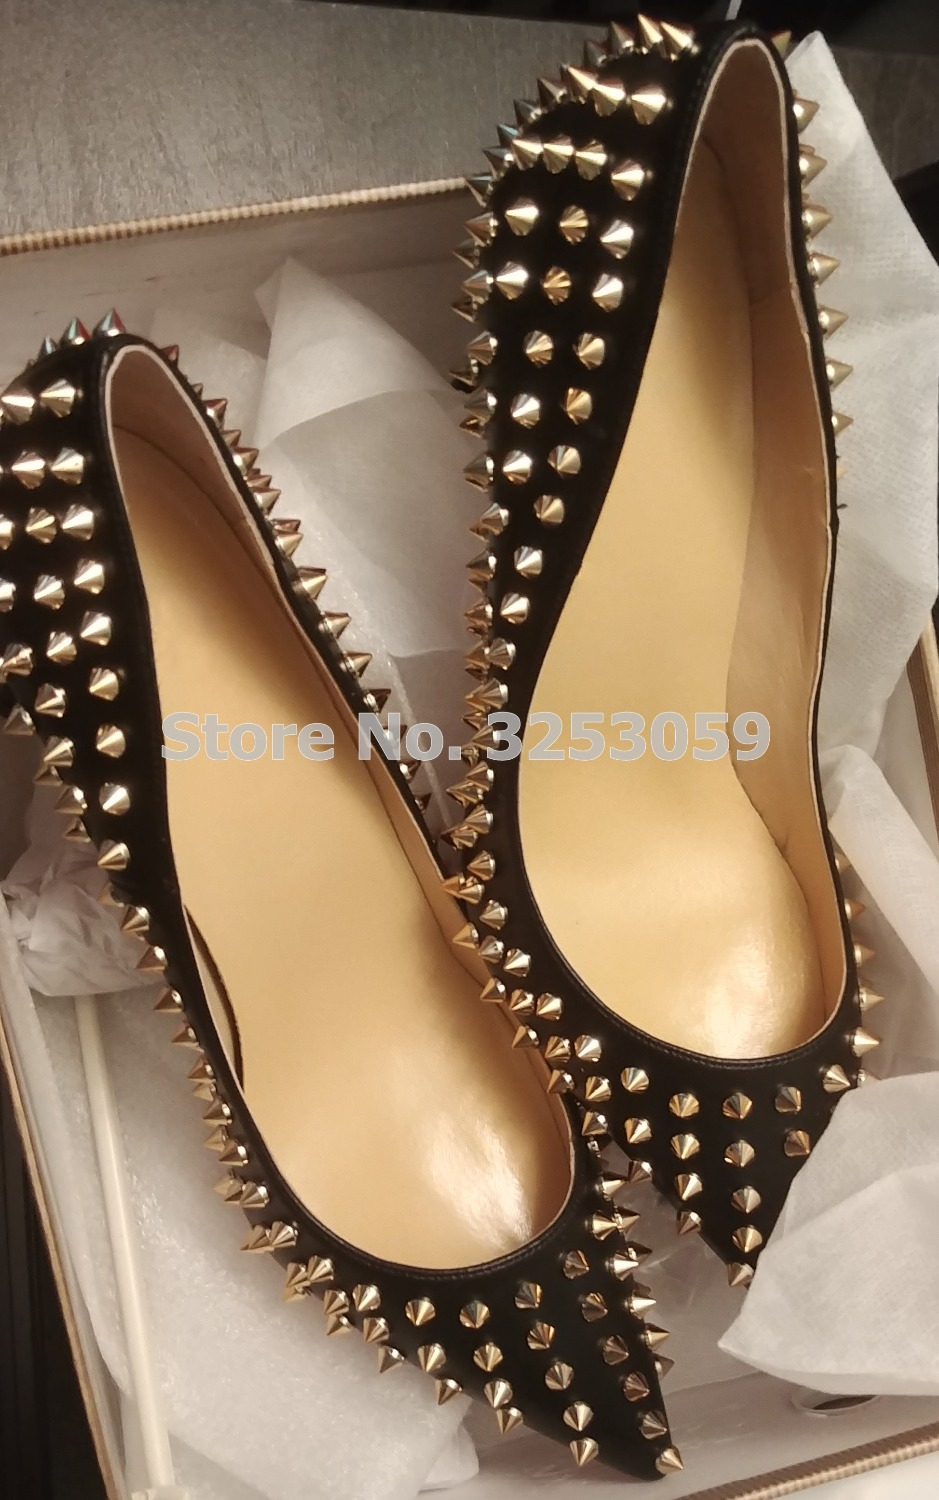 цена на ALMUDENA Top Brand Women Sexy Black Suede Gold Rivets Pointed Toe Pumps Shallow Stiletto Heel Golden Spikes Banquet Dress Shoes